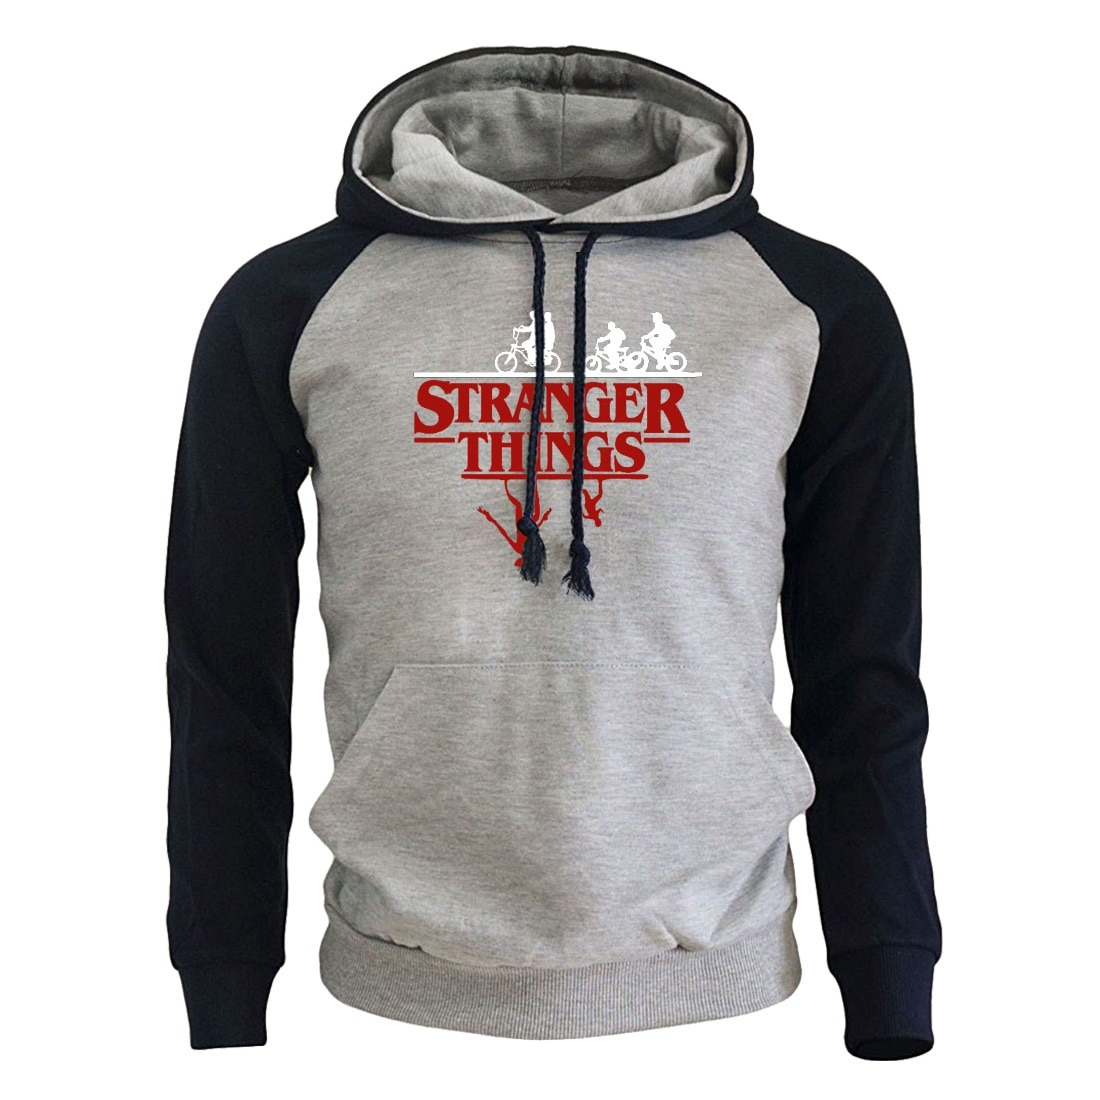 Sudadera con capucha Stranger Things Casual 2020 4